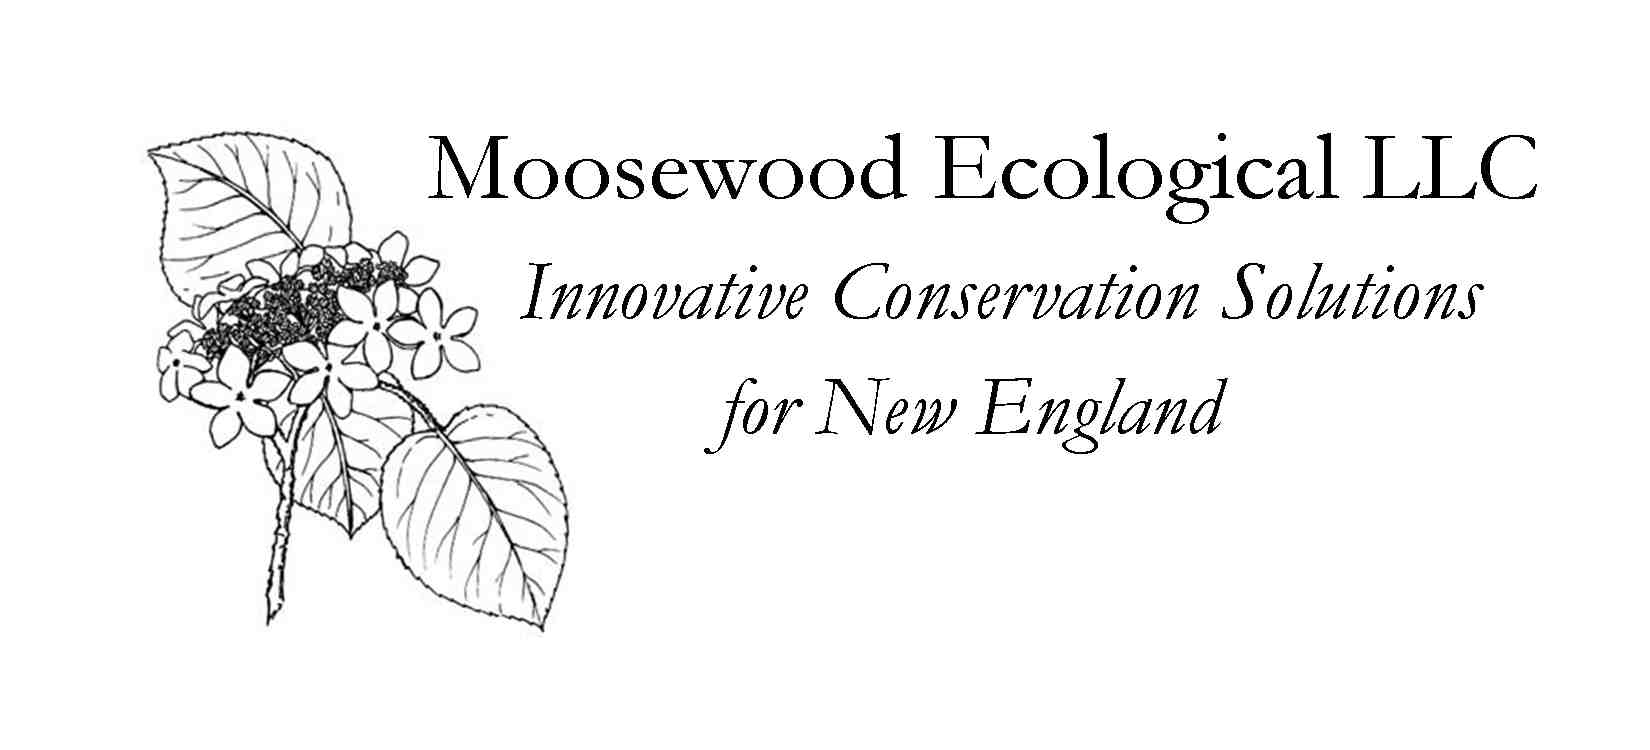 Moosewood Ecological